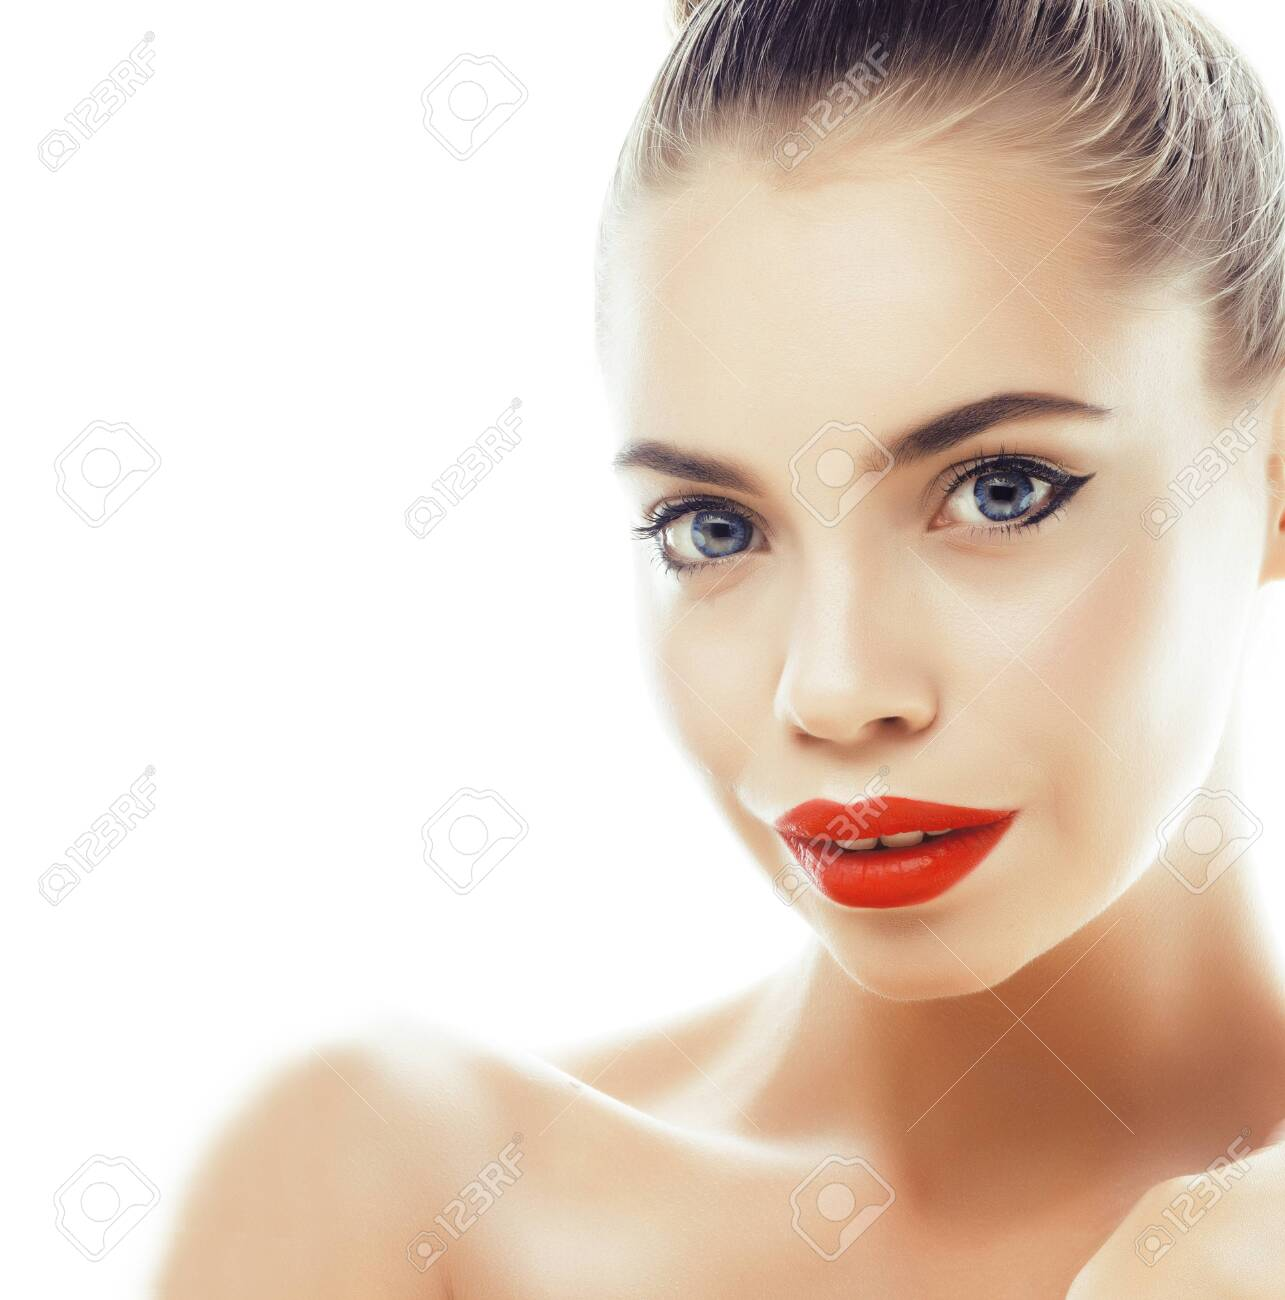 young pretty brunette real woman close up isolated on white background. Fancy fashion makeup, natural look spa - 148700637